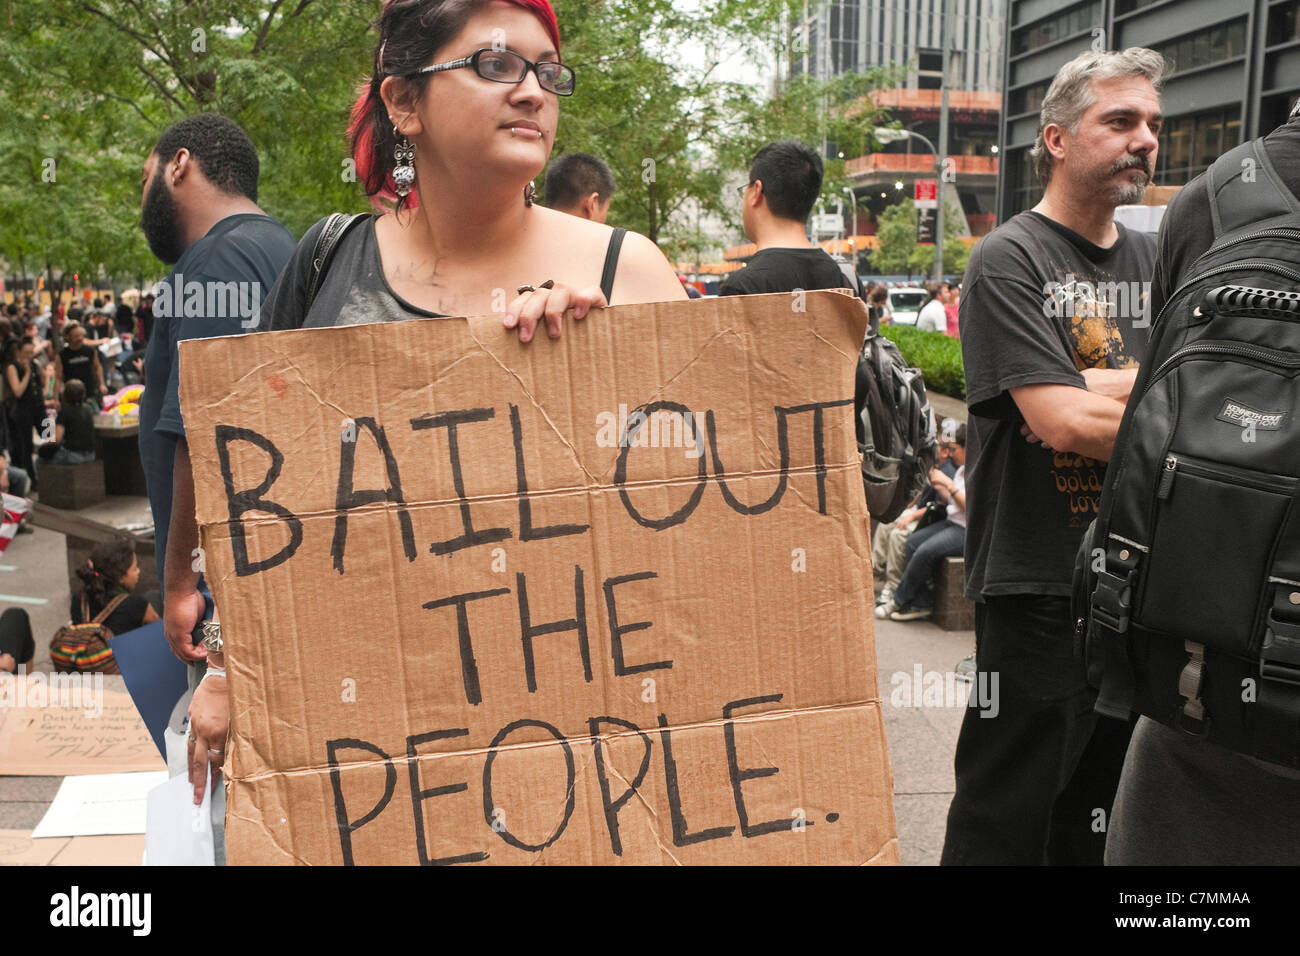 One week since OccupyWallStreet began protesters continue to occupy Zuccotti Park, which they r Stock Photo